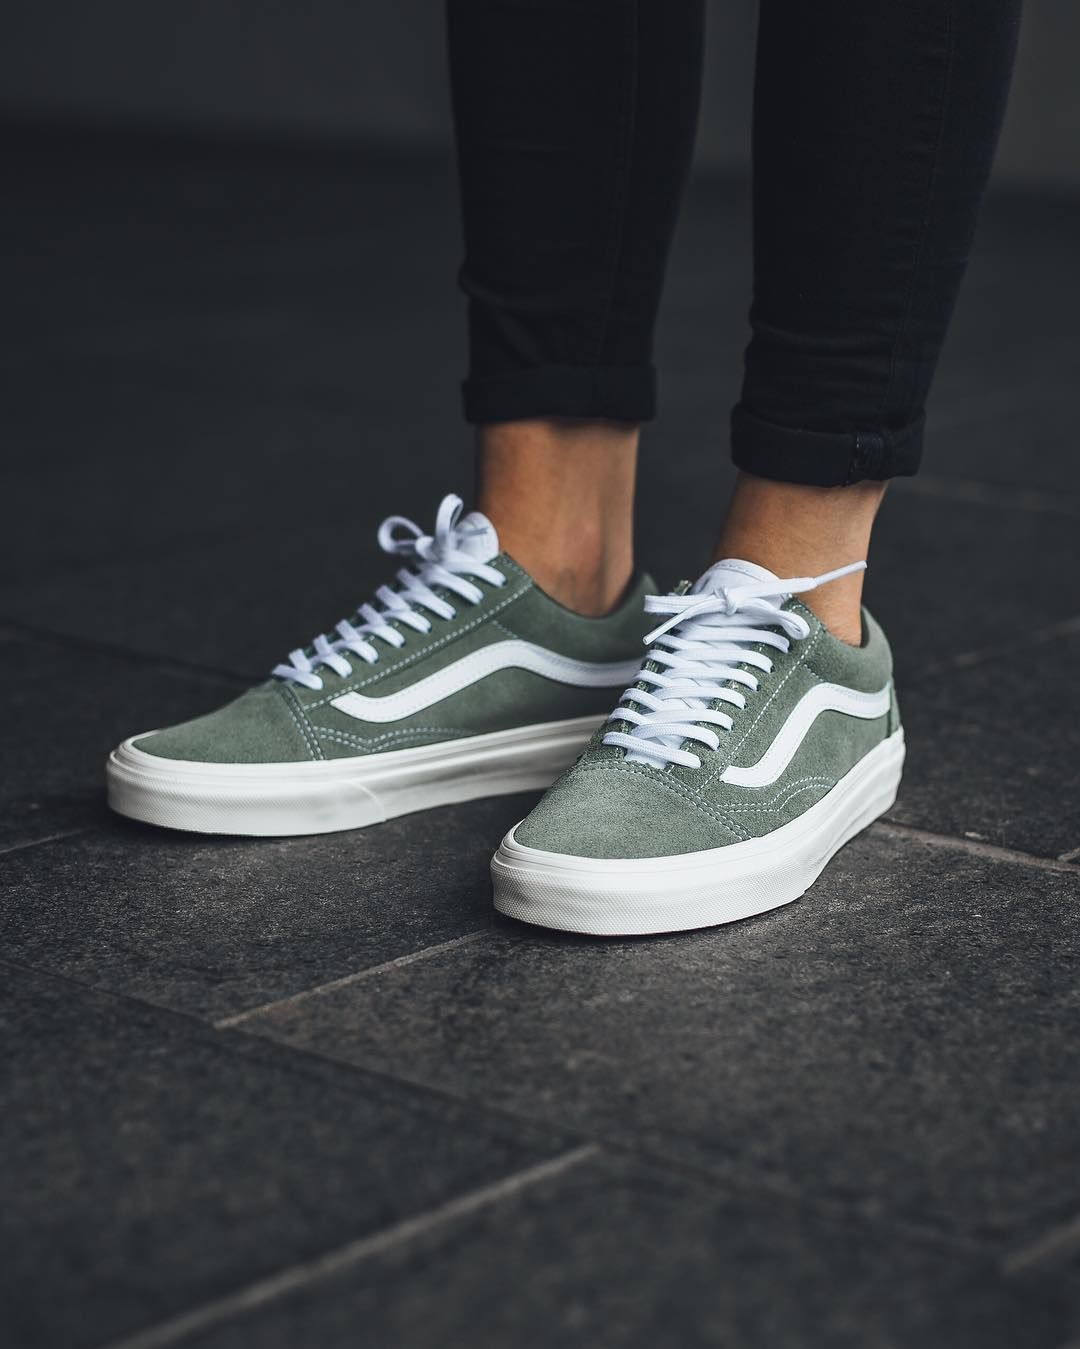 5726ef24644 VANS Old Skool